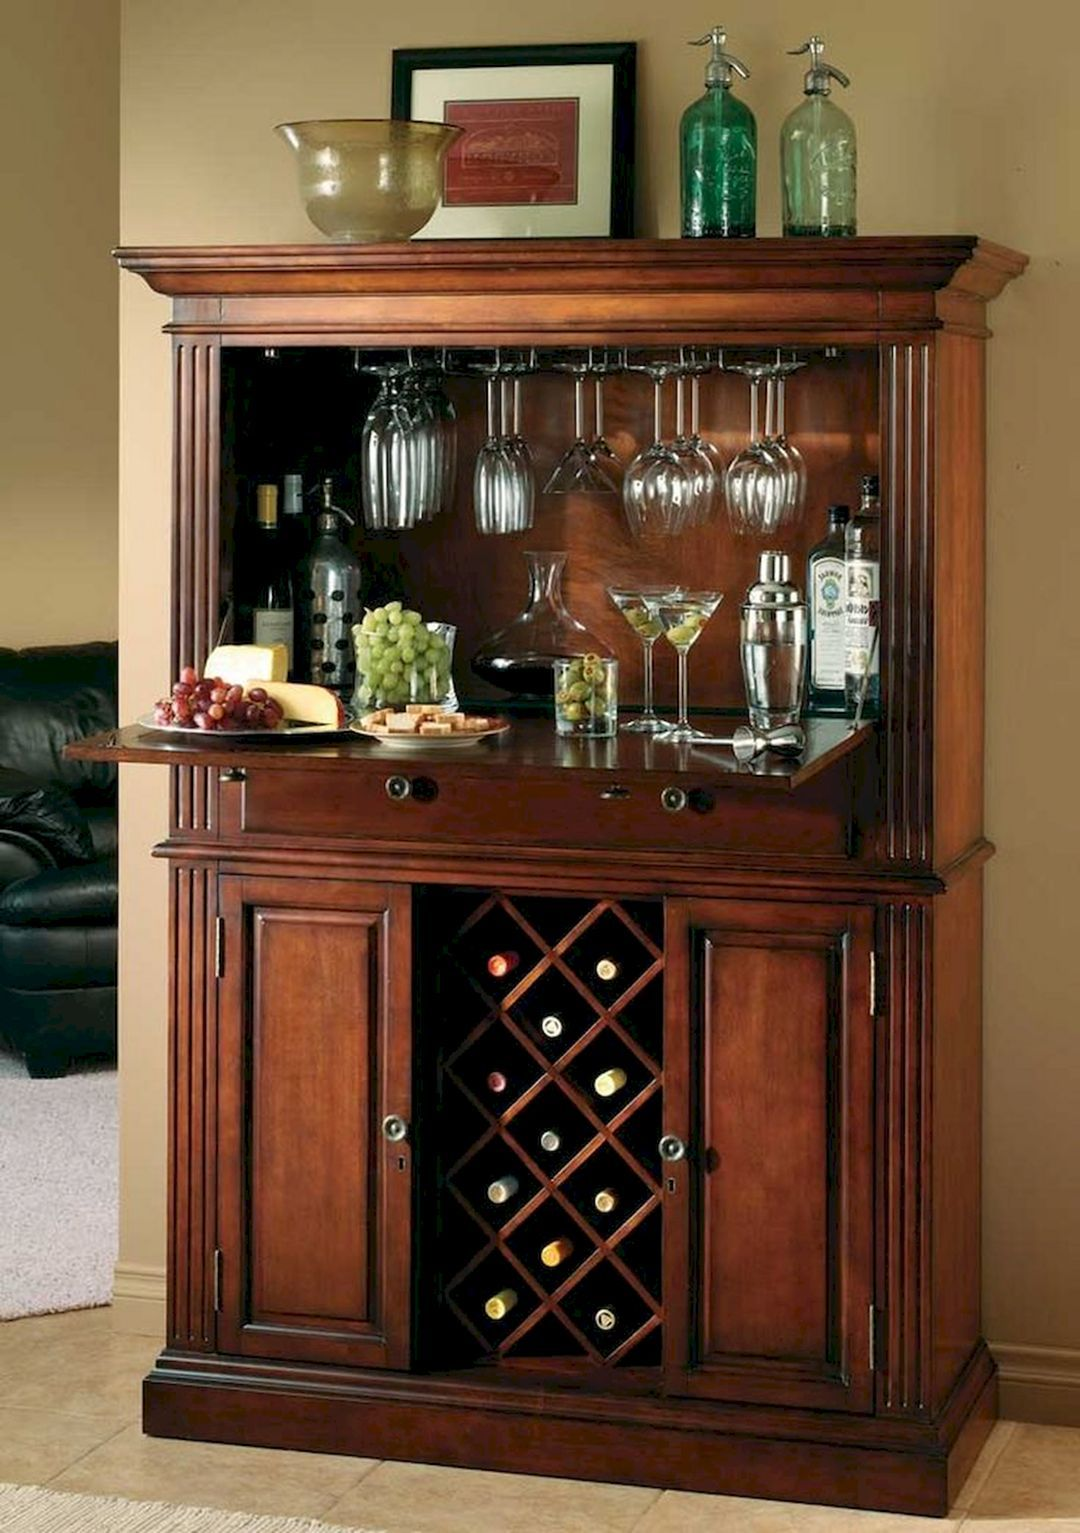 20 Gorgeous Small Corner Wine Cabinet Ideas For Home Look More Beautiful Wine Furniture Wine Cabinets Corner Wine Cabinet